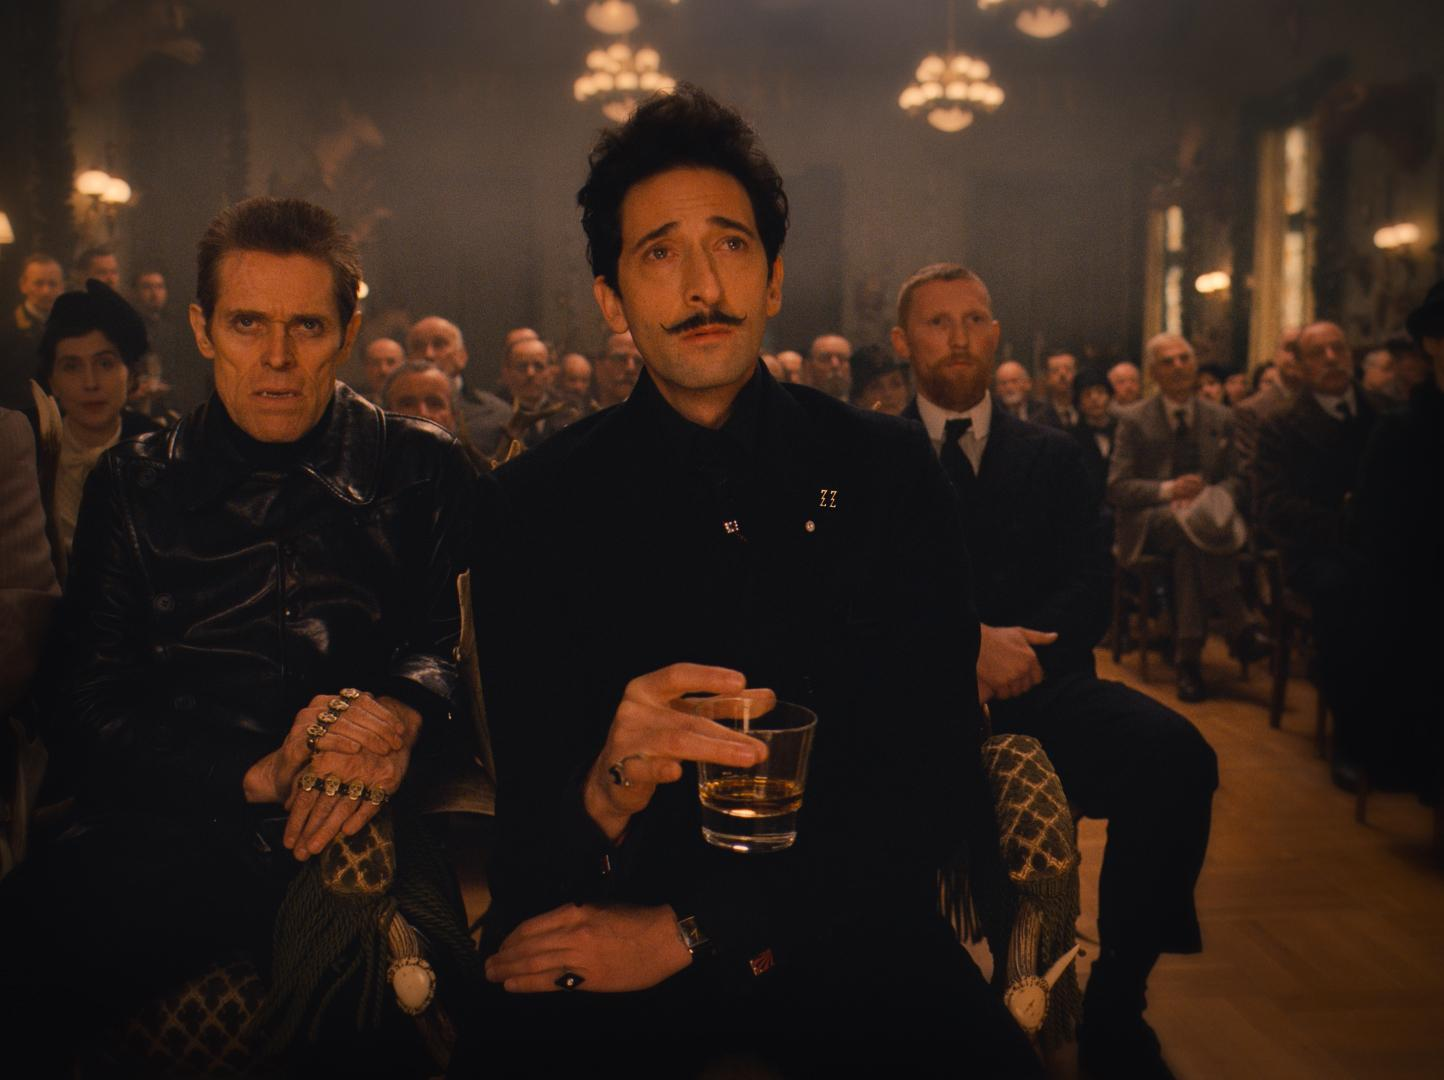 still-of-willem-dafoe-and-adrien-brody-in-the-grand-budapest-hotel-(2014)-large-picture